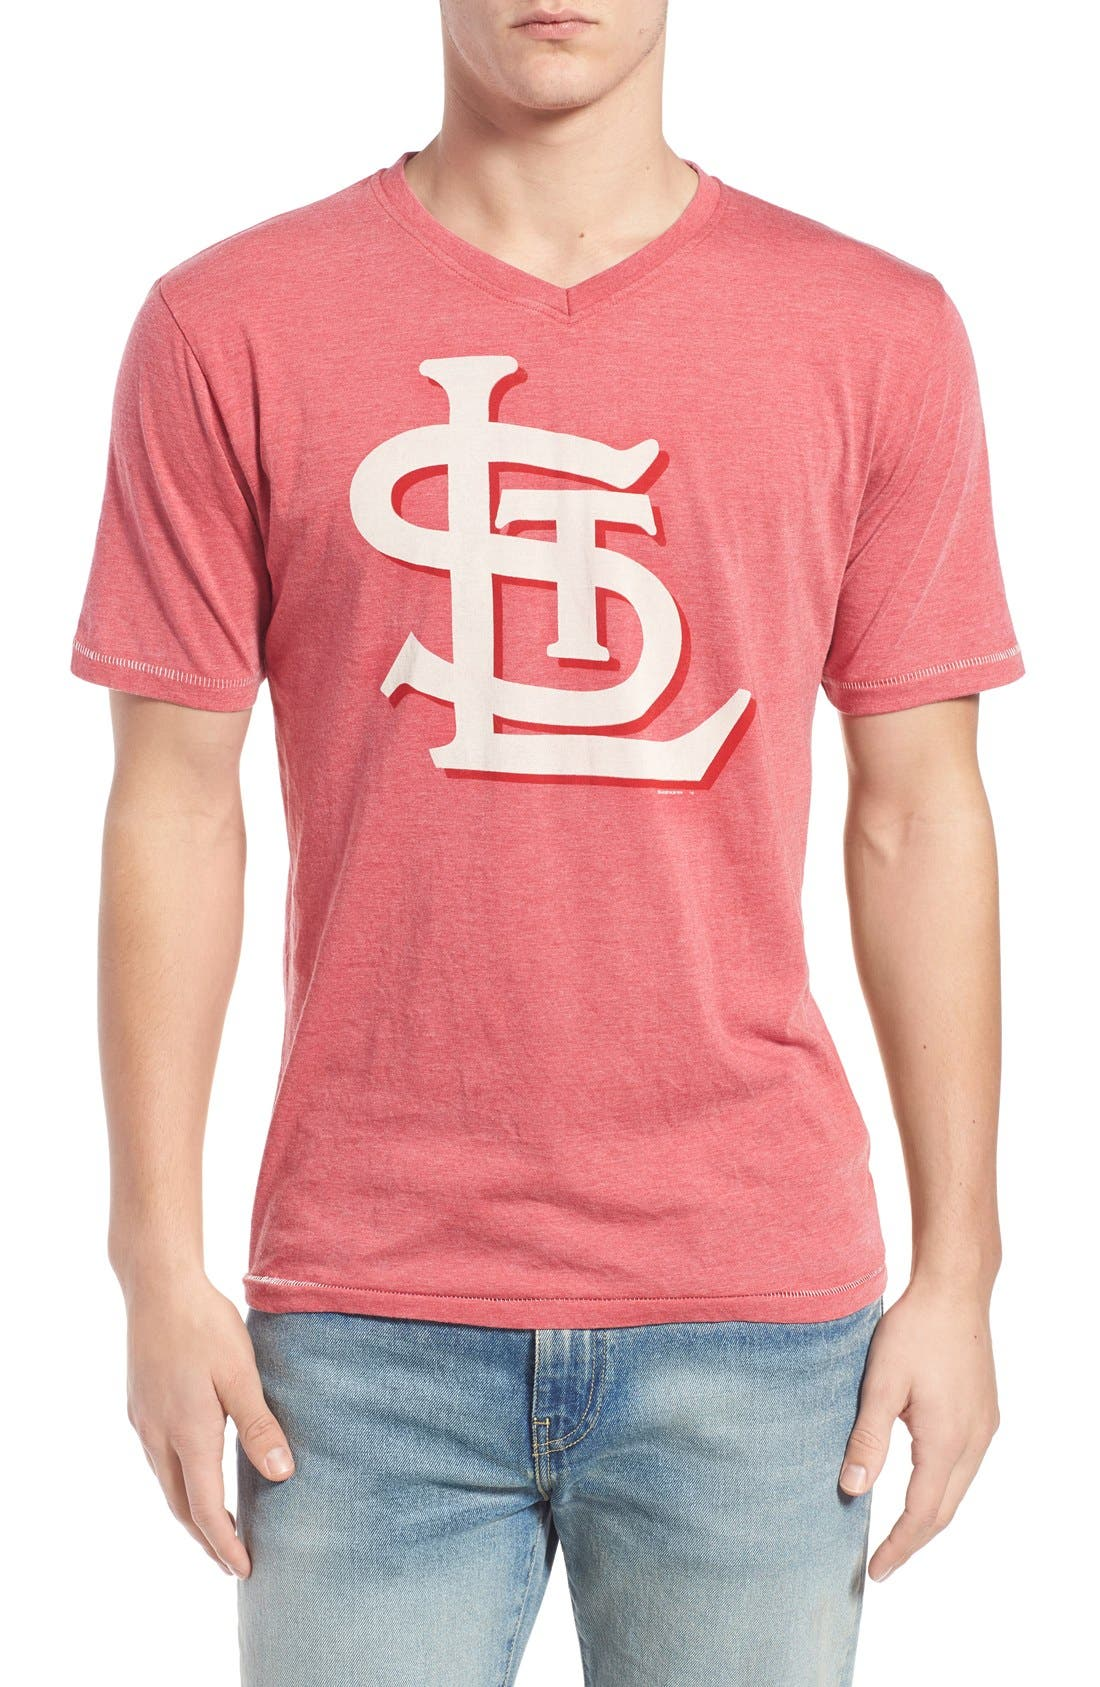 Red Jacket 'Saint Louis Cardinals - Calumet' Graphic V-Neck T-Shirt